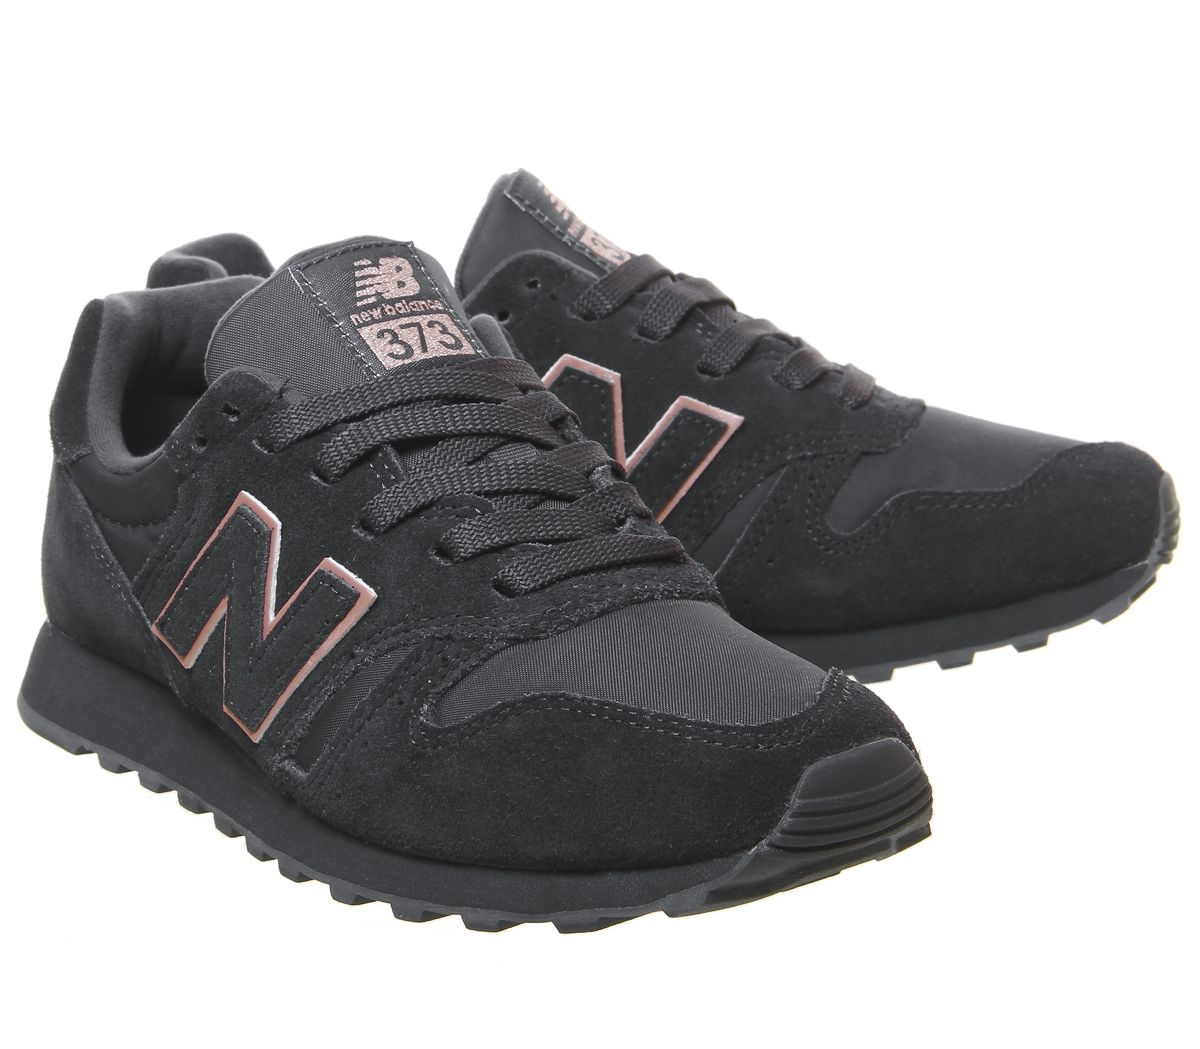 cheap for discount 893df ceff6 Sentinel Womens New Balance Wl373 Trainers Phantom Rose Gold Exclusive  Trainers Shoes